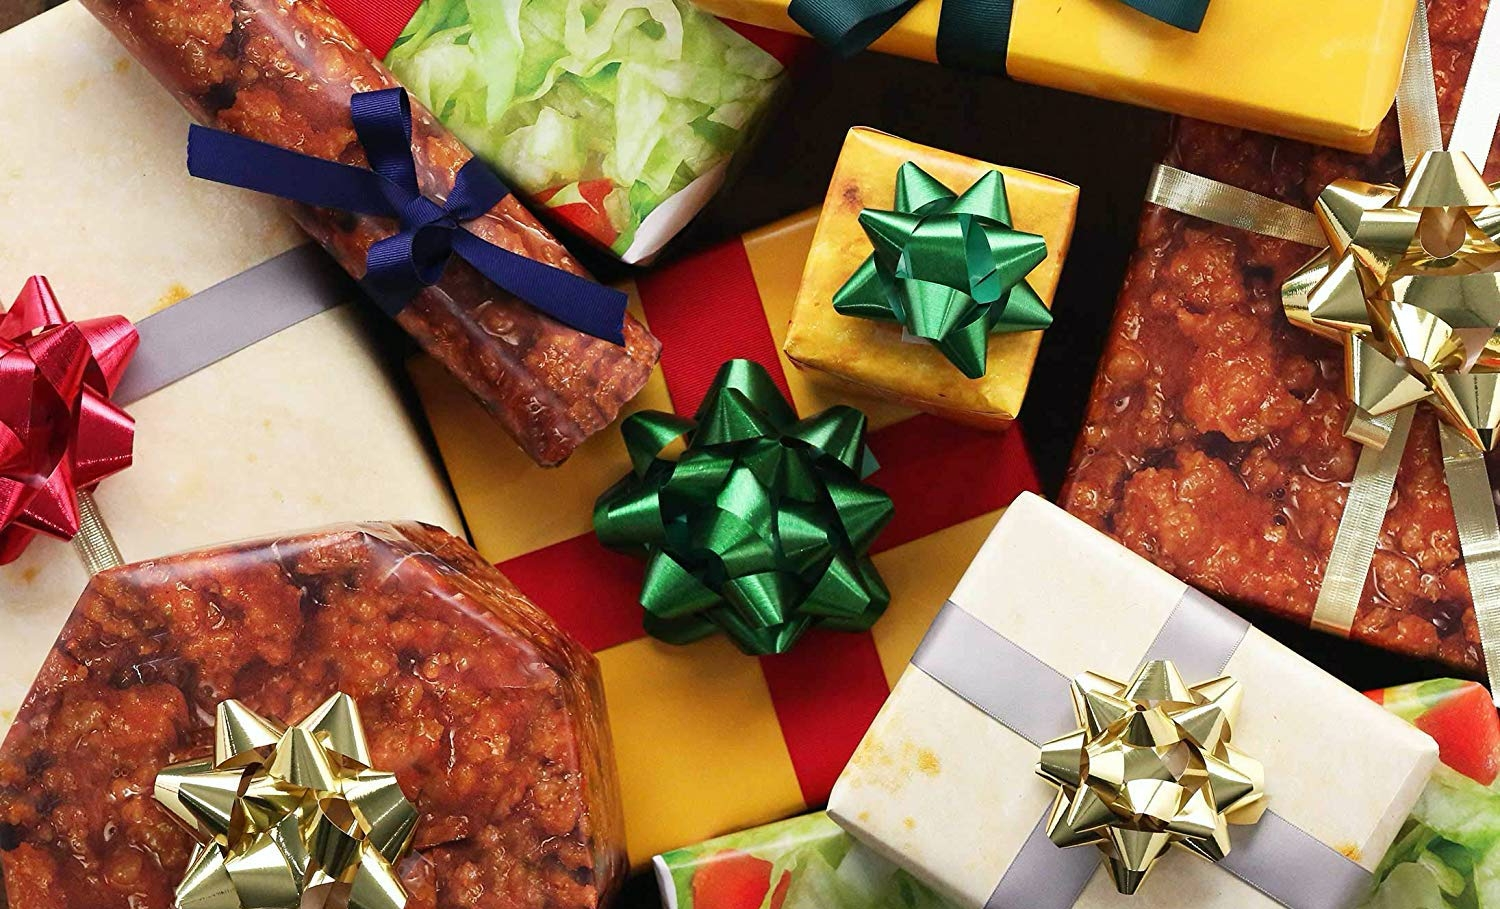 A spread of presents adorned with bows and wrapped with paper that looks like the ingredients of a Taco Bell Crunchwrap.